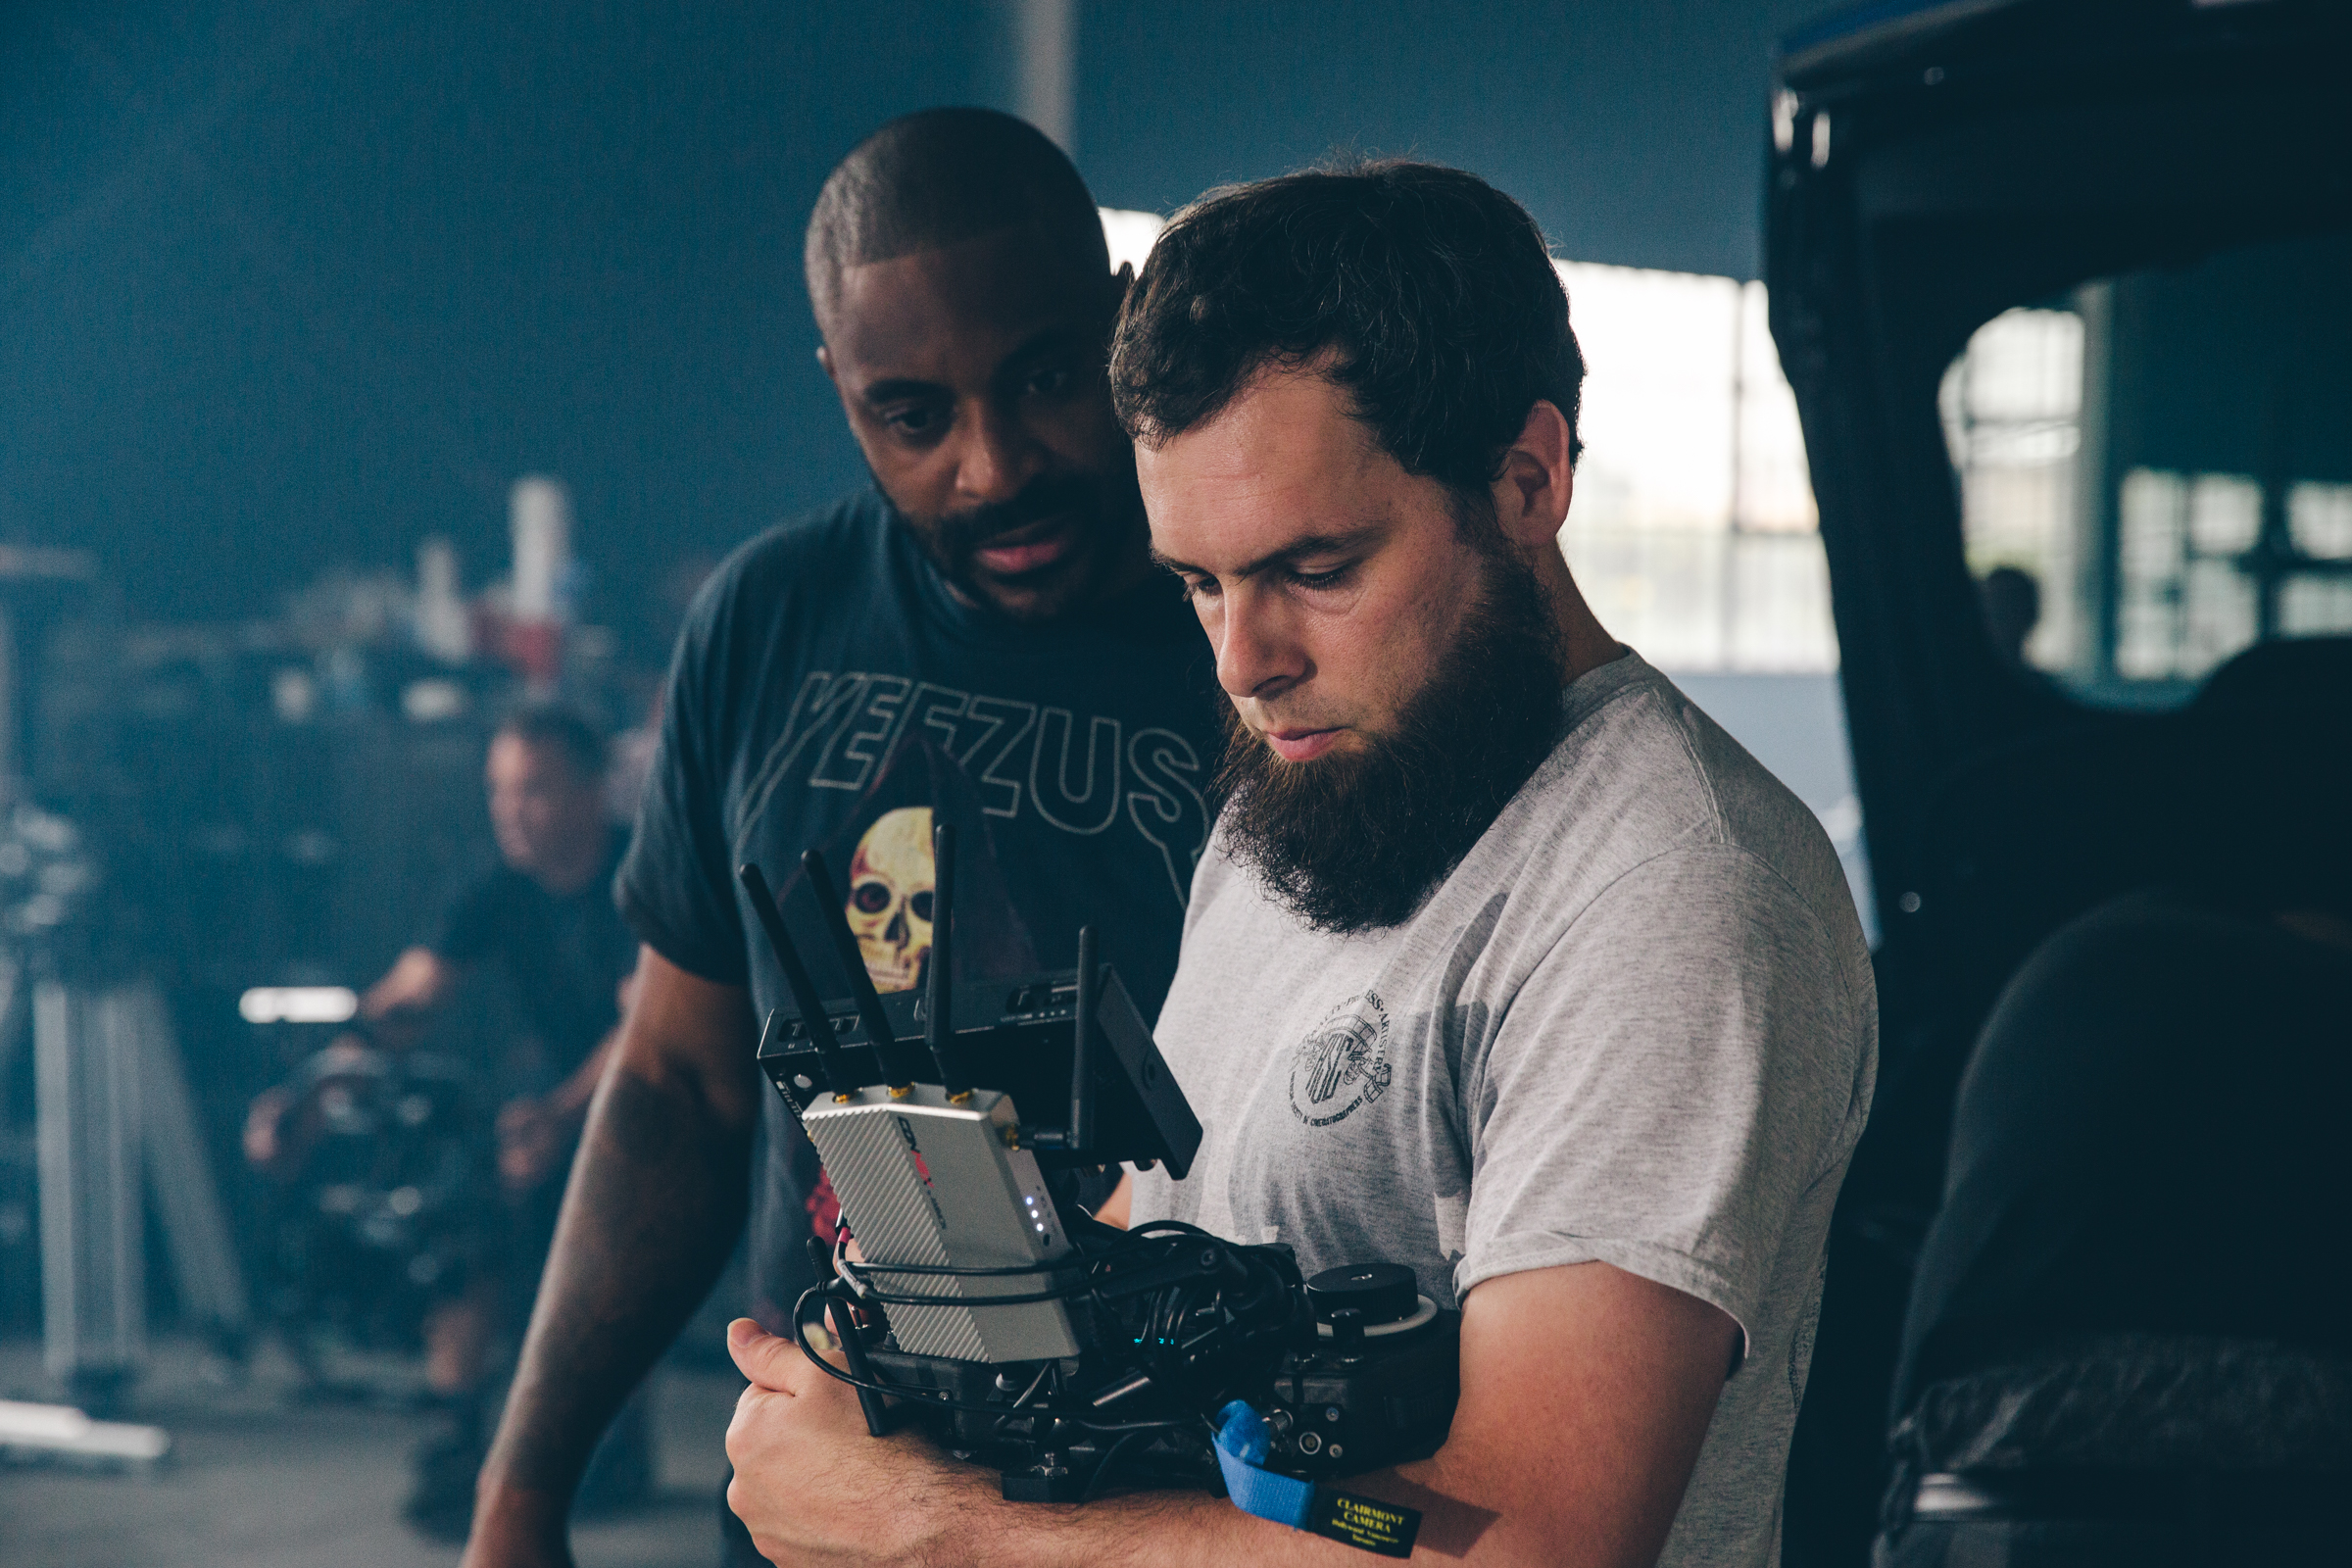 Brandon Riley (R) is the cinematographer for 'Slice', starring Chance the Rapper in his first full-length feature film. (Photo Credit: Impact 24)